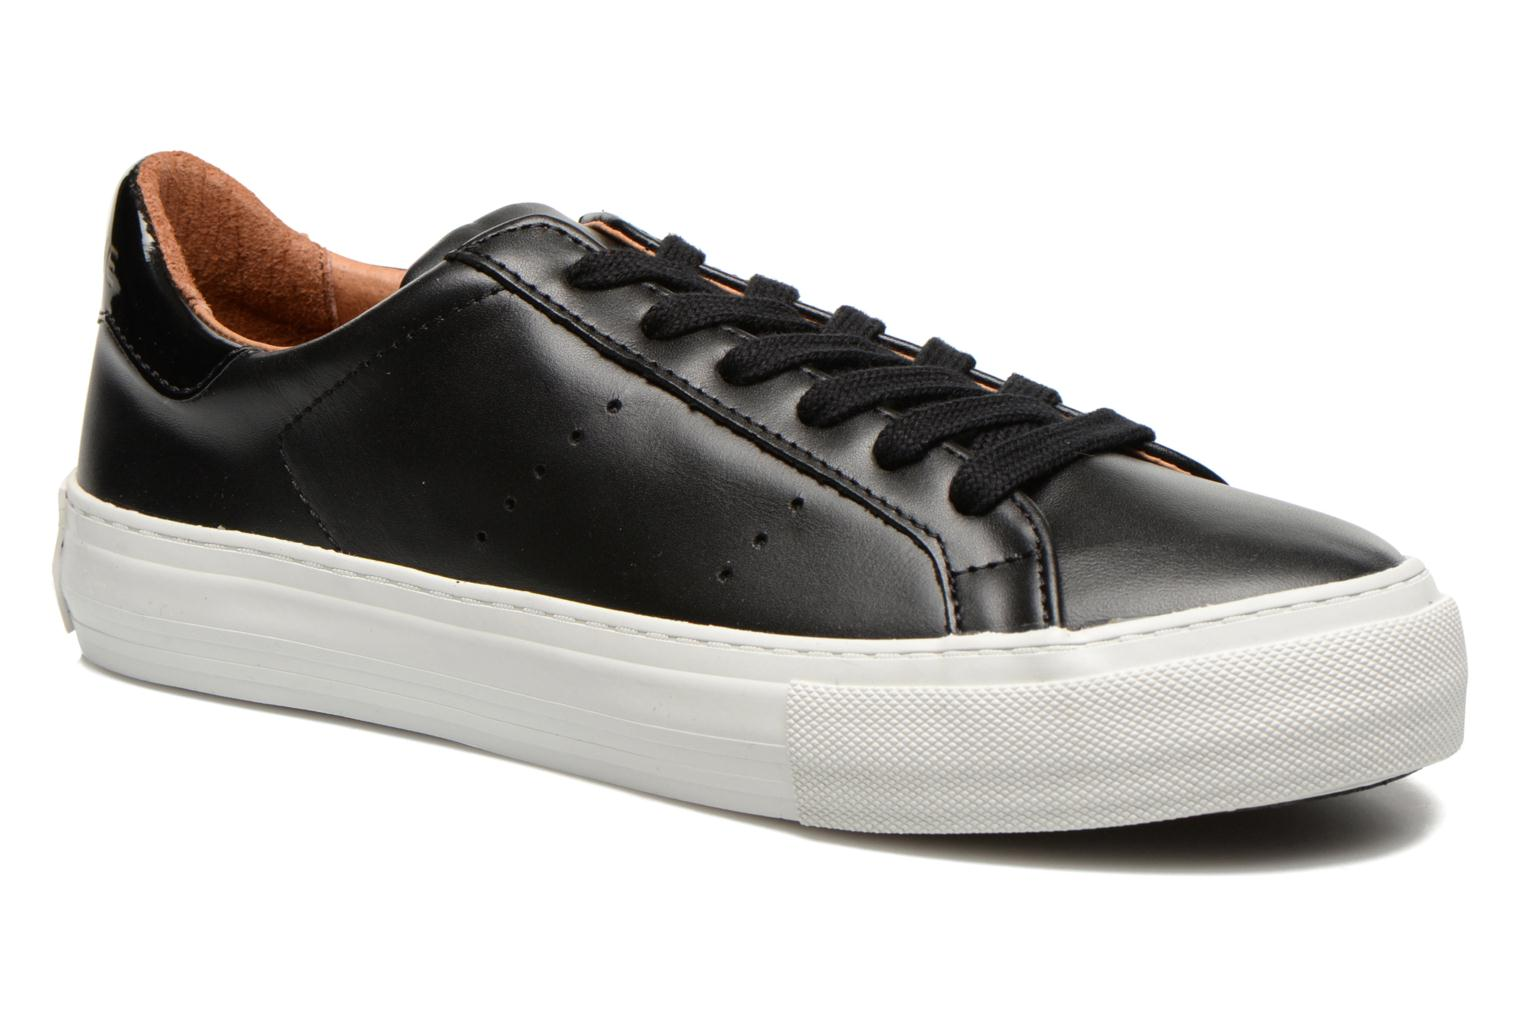 Sneakers Arcade Sneaker Altezza Leather by No Name